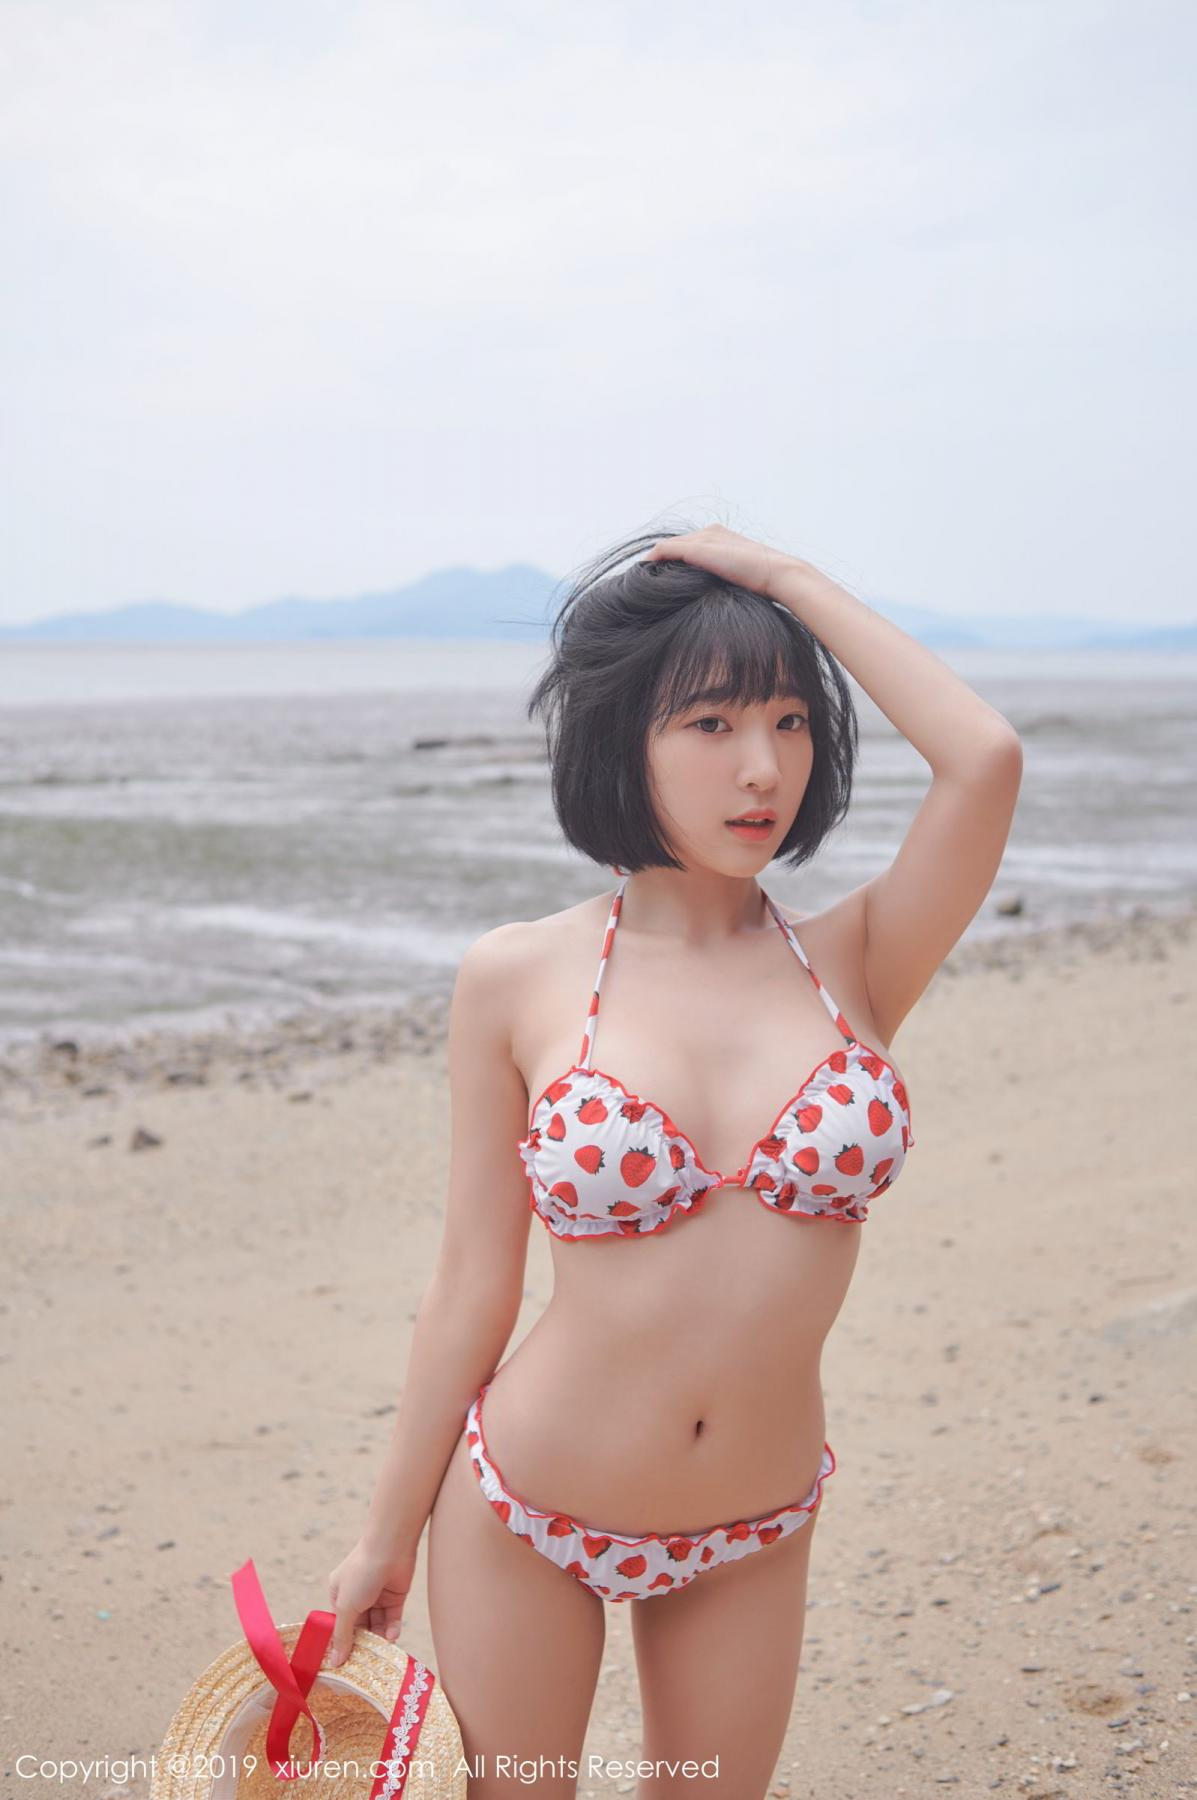 [XiuRen] Vol.1611 Model Qing Qing 23P, Beach, Bikini, Kang In Kyung, Xiuren